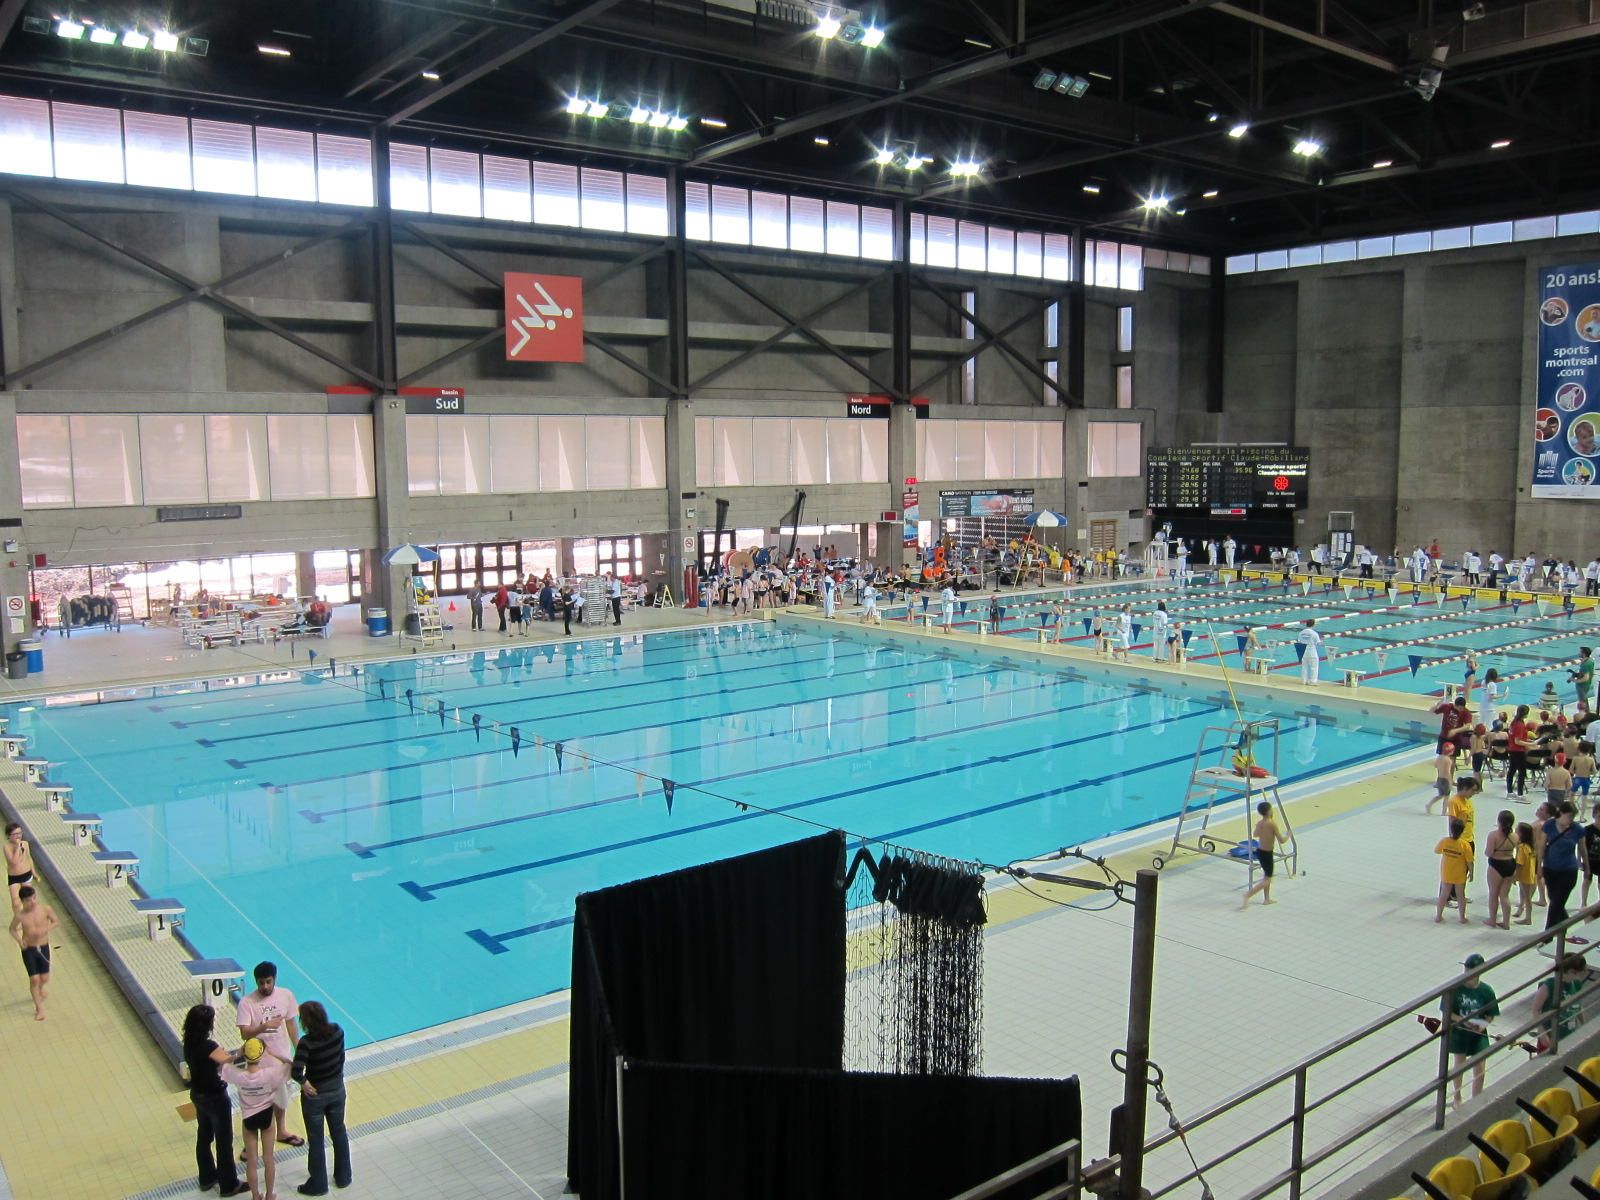 Natation vasion cr6 for Centre sportif terrebonne piscine